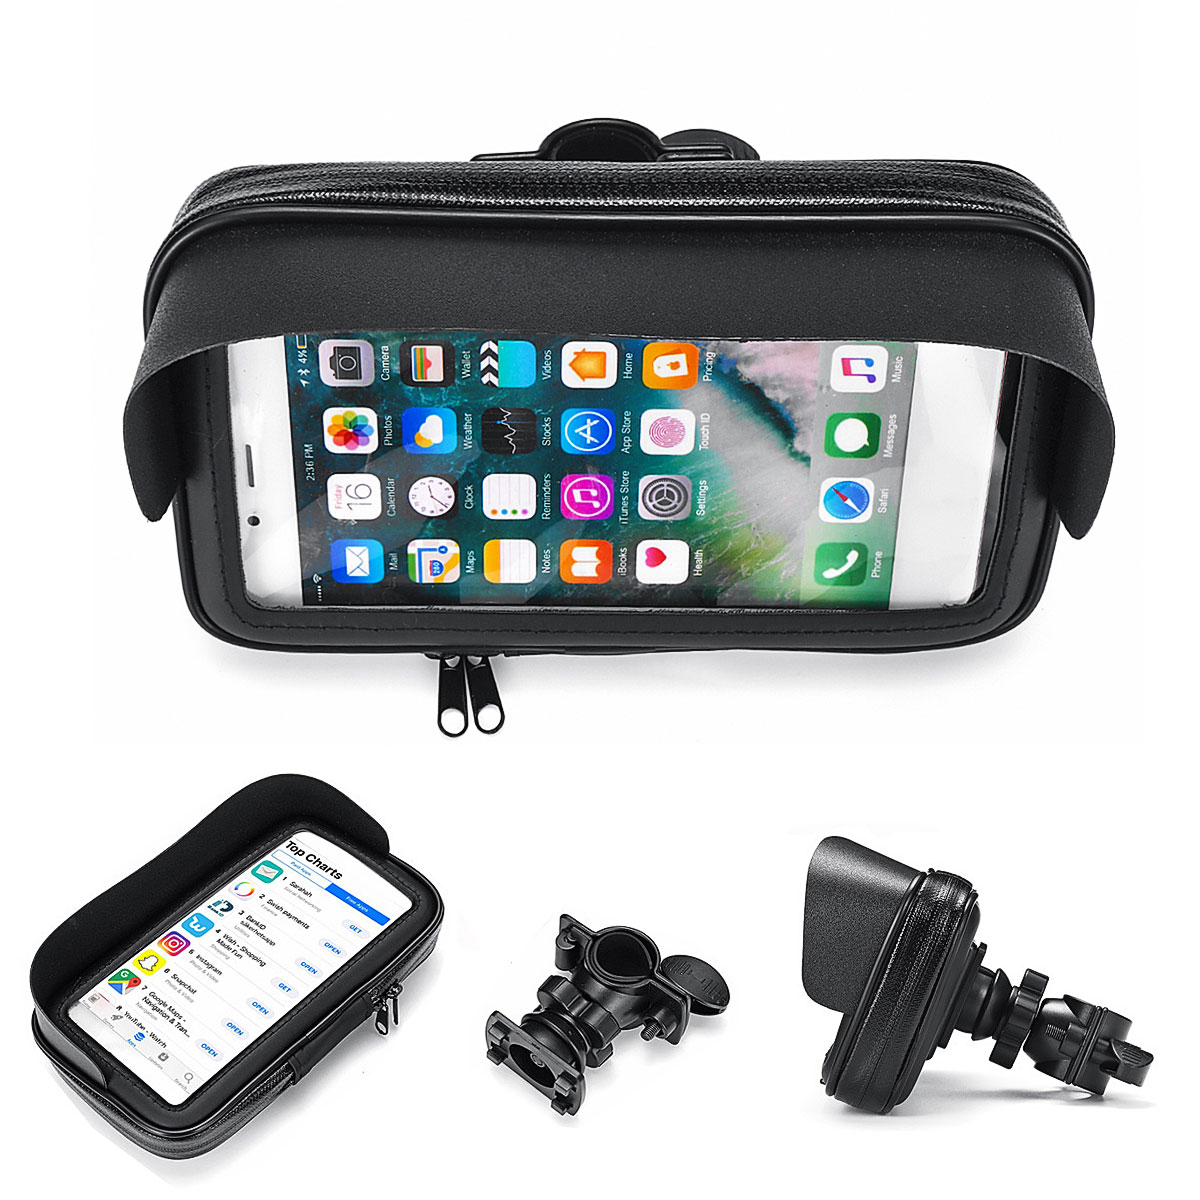 6.3inch Waterproof Bike Phone Holder MTB Bicycle Phone Bag Holder Pouch Motorcycle Mount for Samsung for iPhone for LG V20/Mate